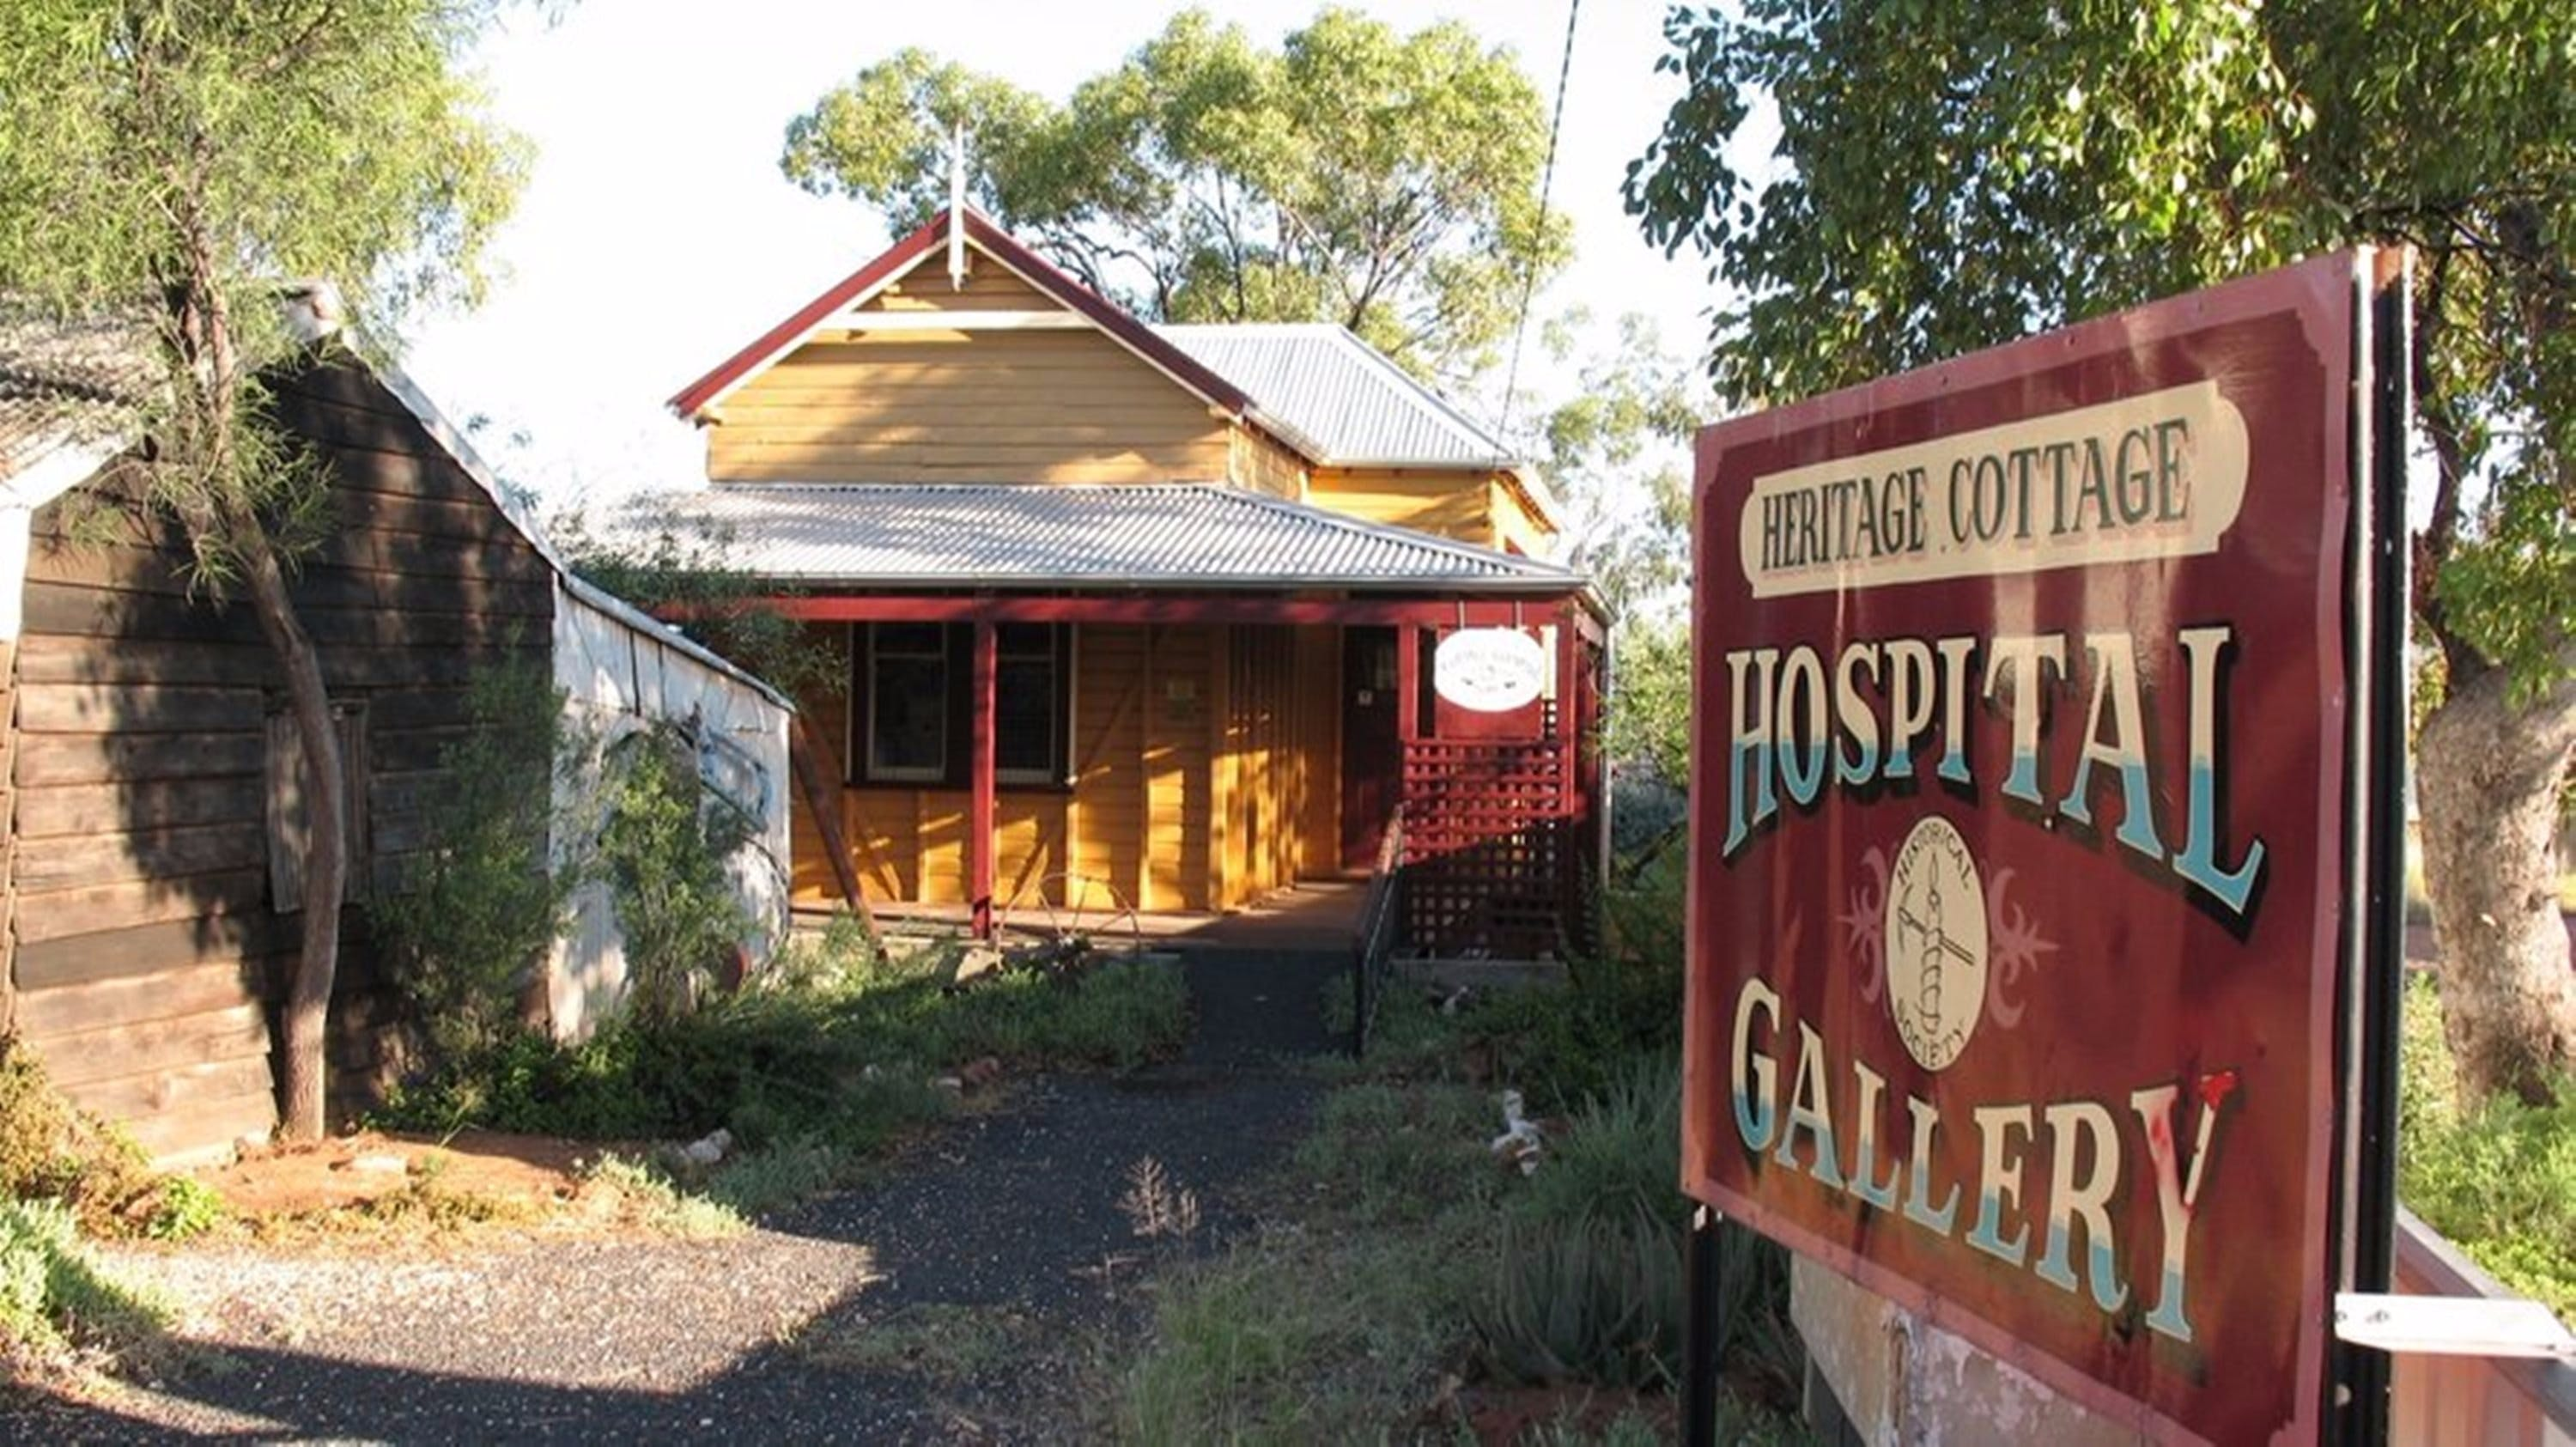 Lightning Ridge Heritage Cottage - Attractions Perth